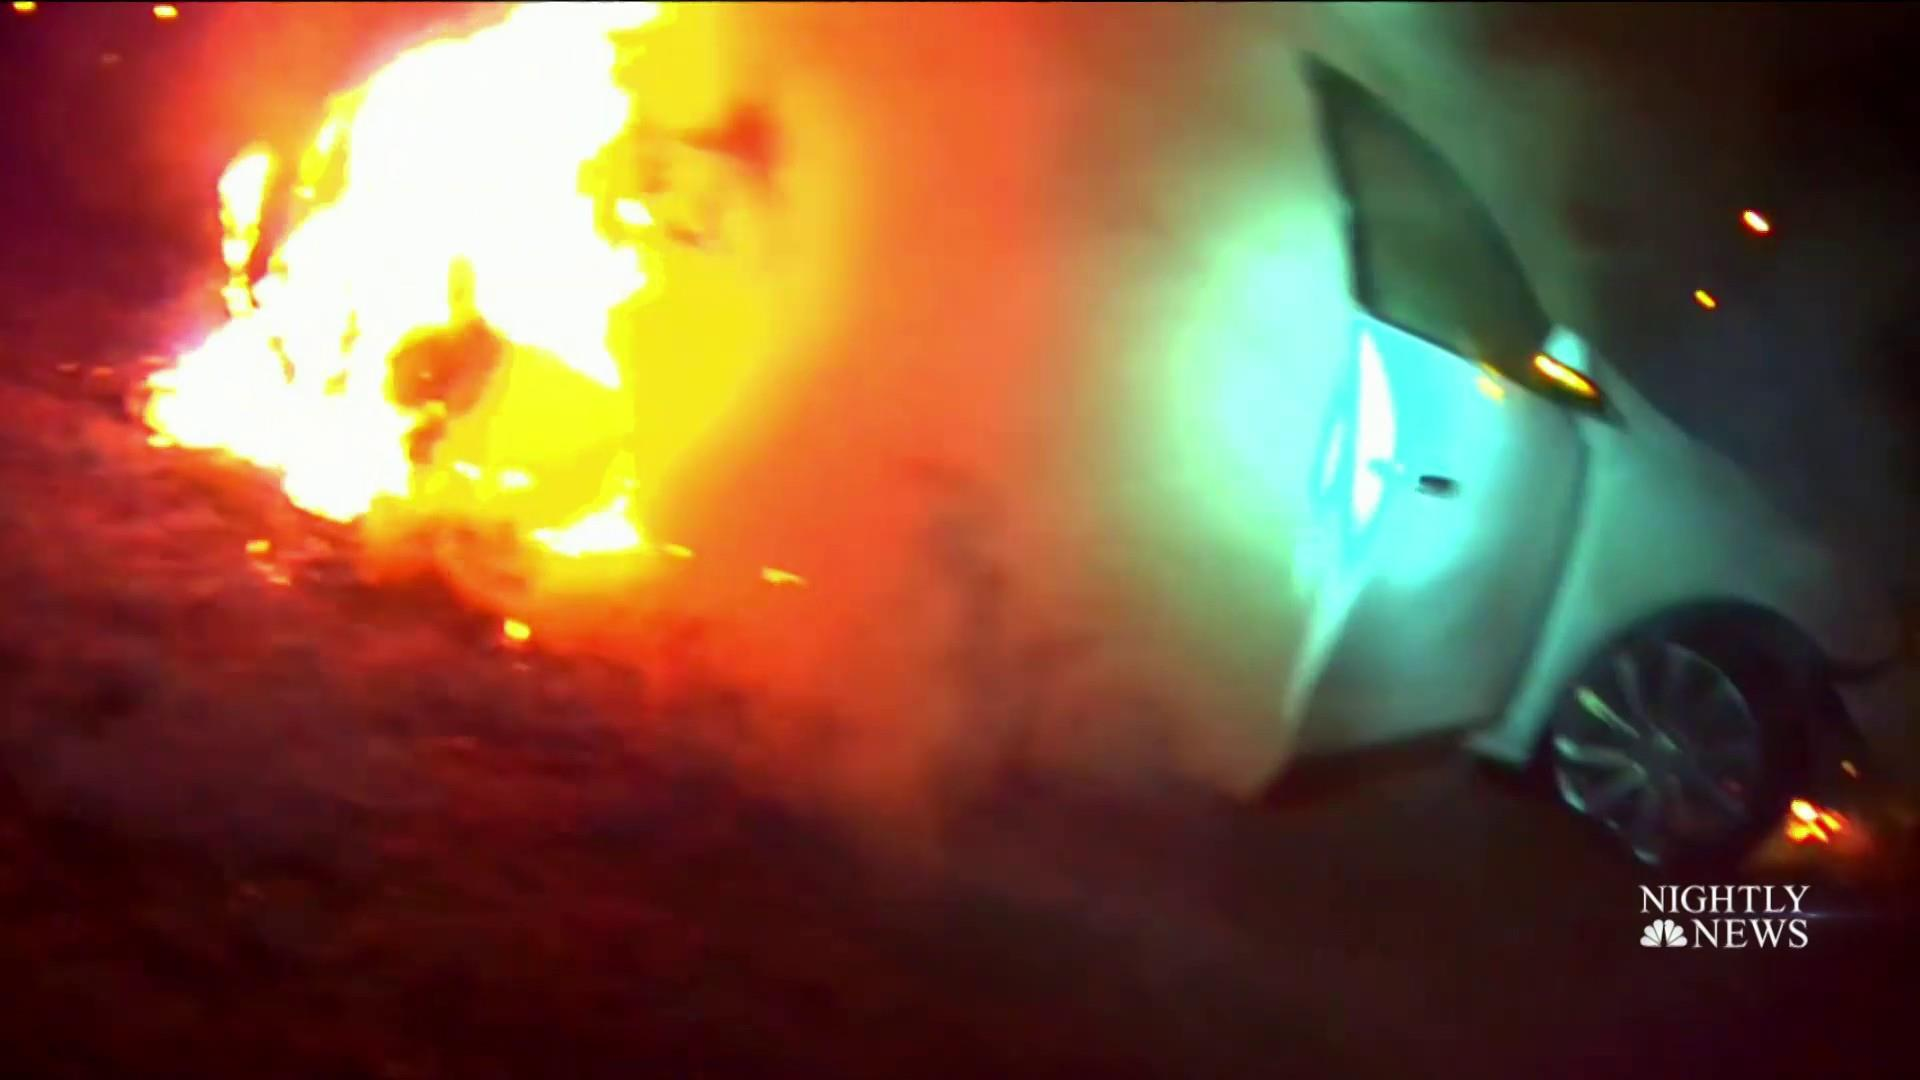 Officers rescue unconscious woman from burning vehicle in dramatic video